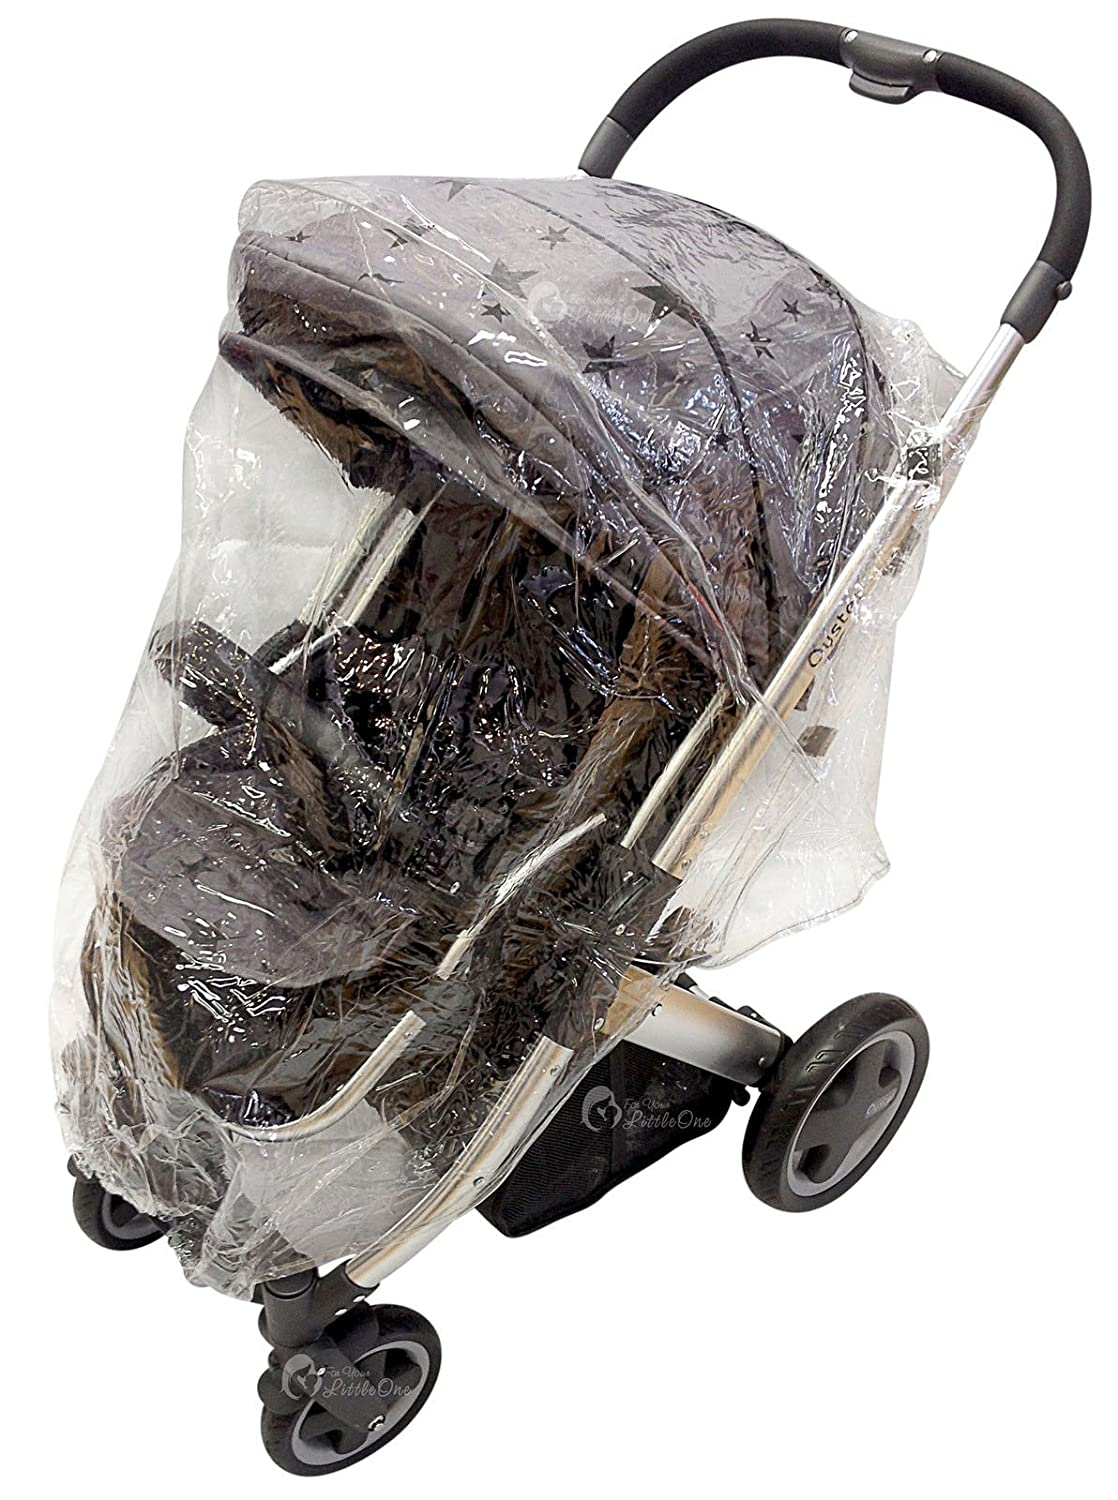 Raincover Compatible with I/'Candy Peach Peach 2 Pushchair 142